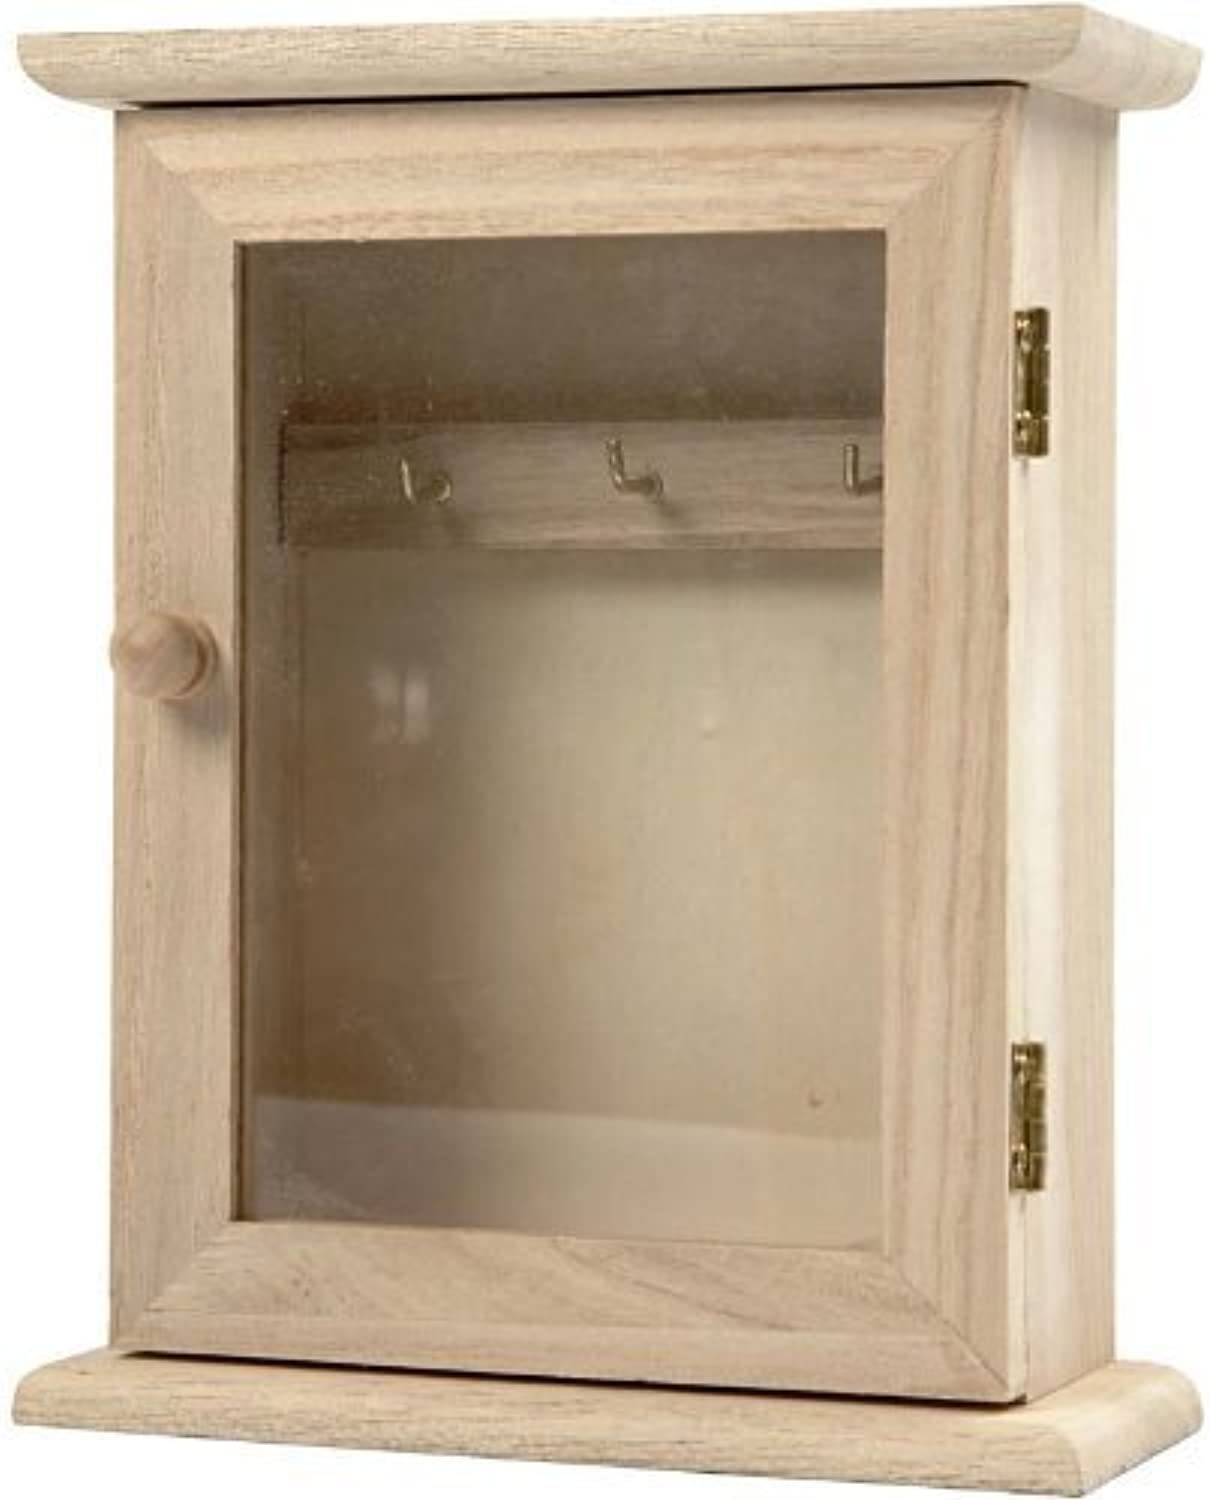 Creativ 1-Piece Wooden Key Cabinet with Glass Panel Door Metal Key Hooks by Creativ